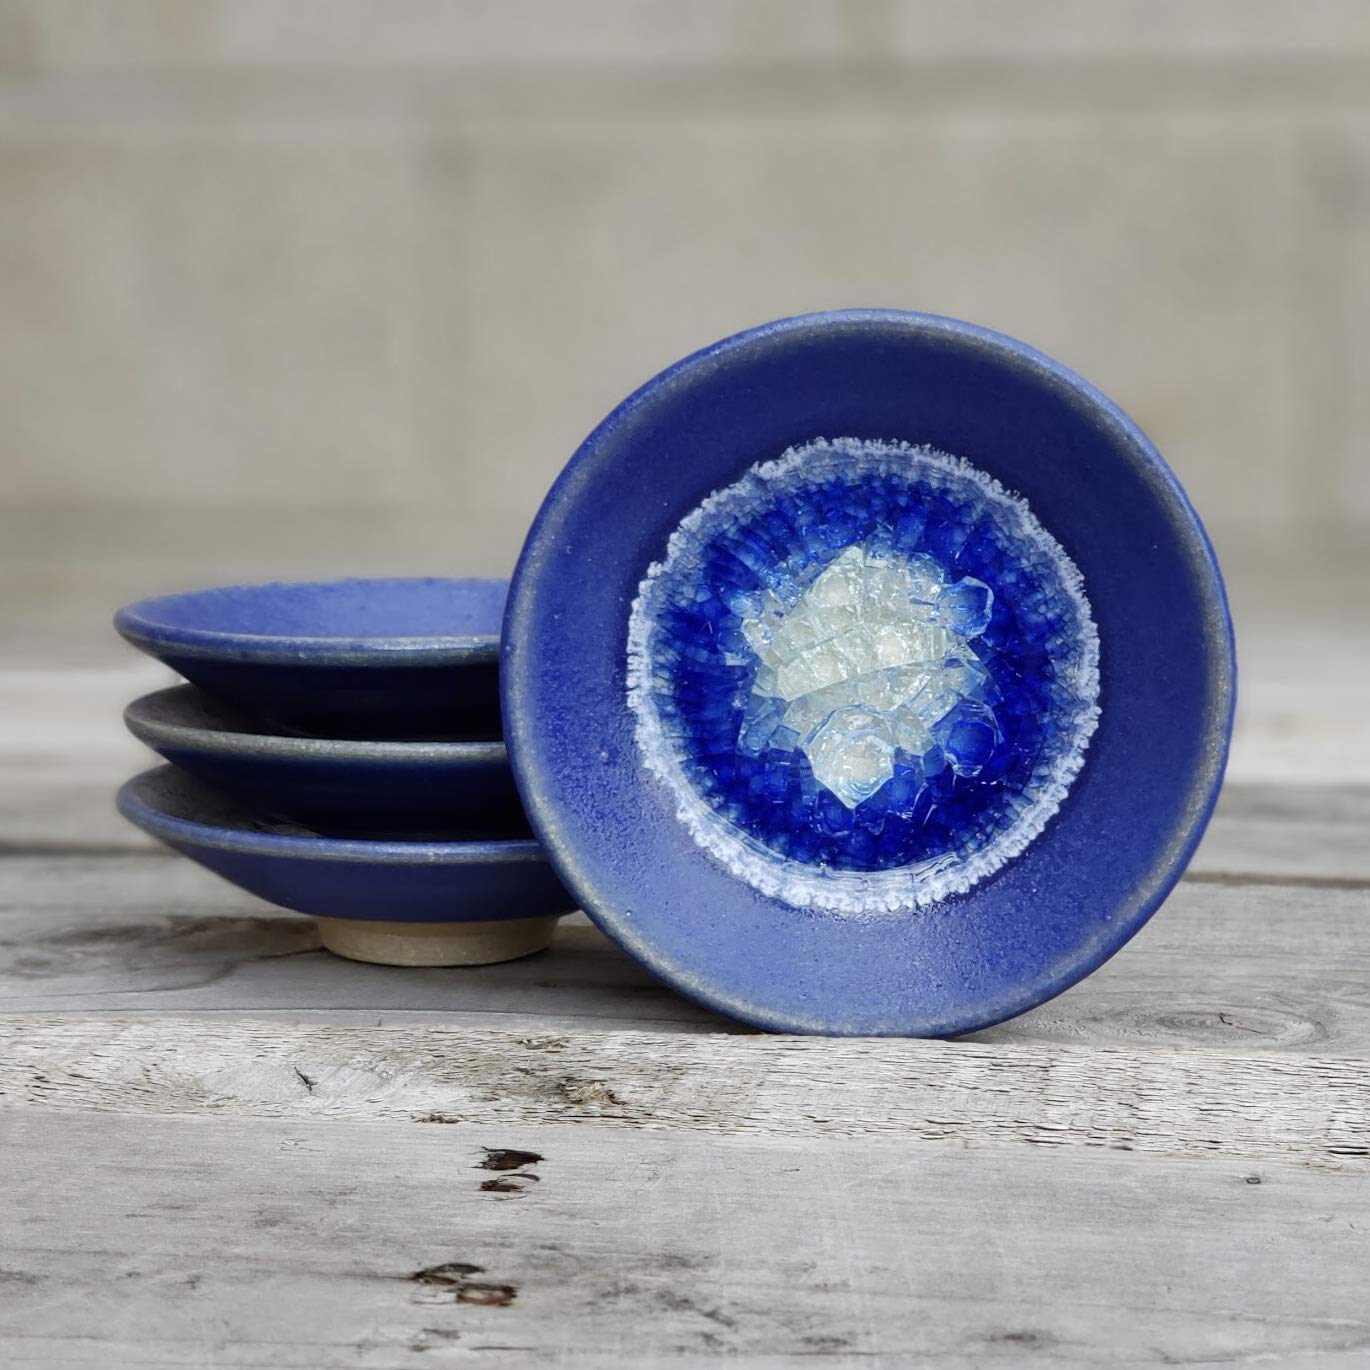 Dock 6 Pottery Soap Dish Candle Holder Kerry Brooks Pottery Crackle Glass GEODE RING DISH: Individual Geode Ring Dish in BLUE Fused Glass Dish Trinket Dish